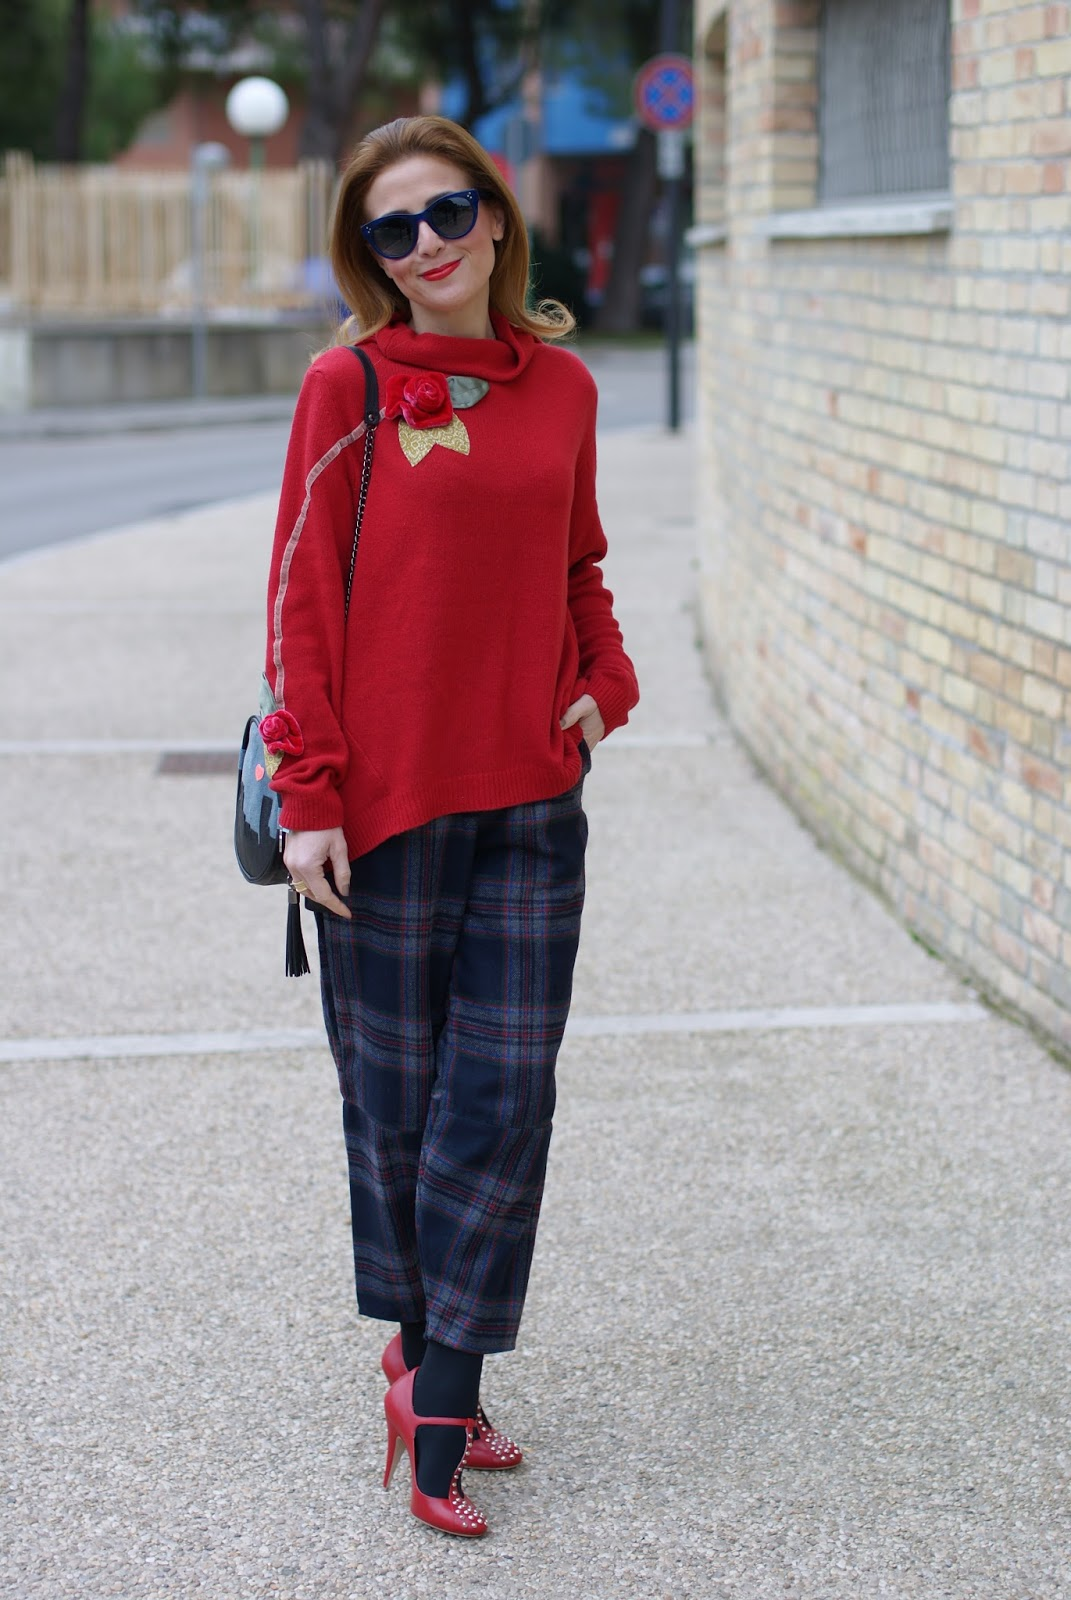 Choies Plaid pants, Rosè a Pois sweater and Miu Miu Mary Jane pumps on Fashion and Cookies fashion blog, fashion blogger style